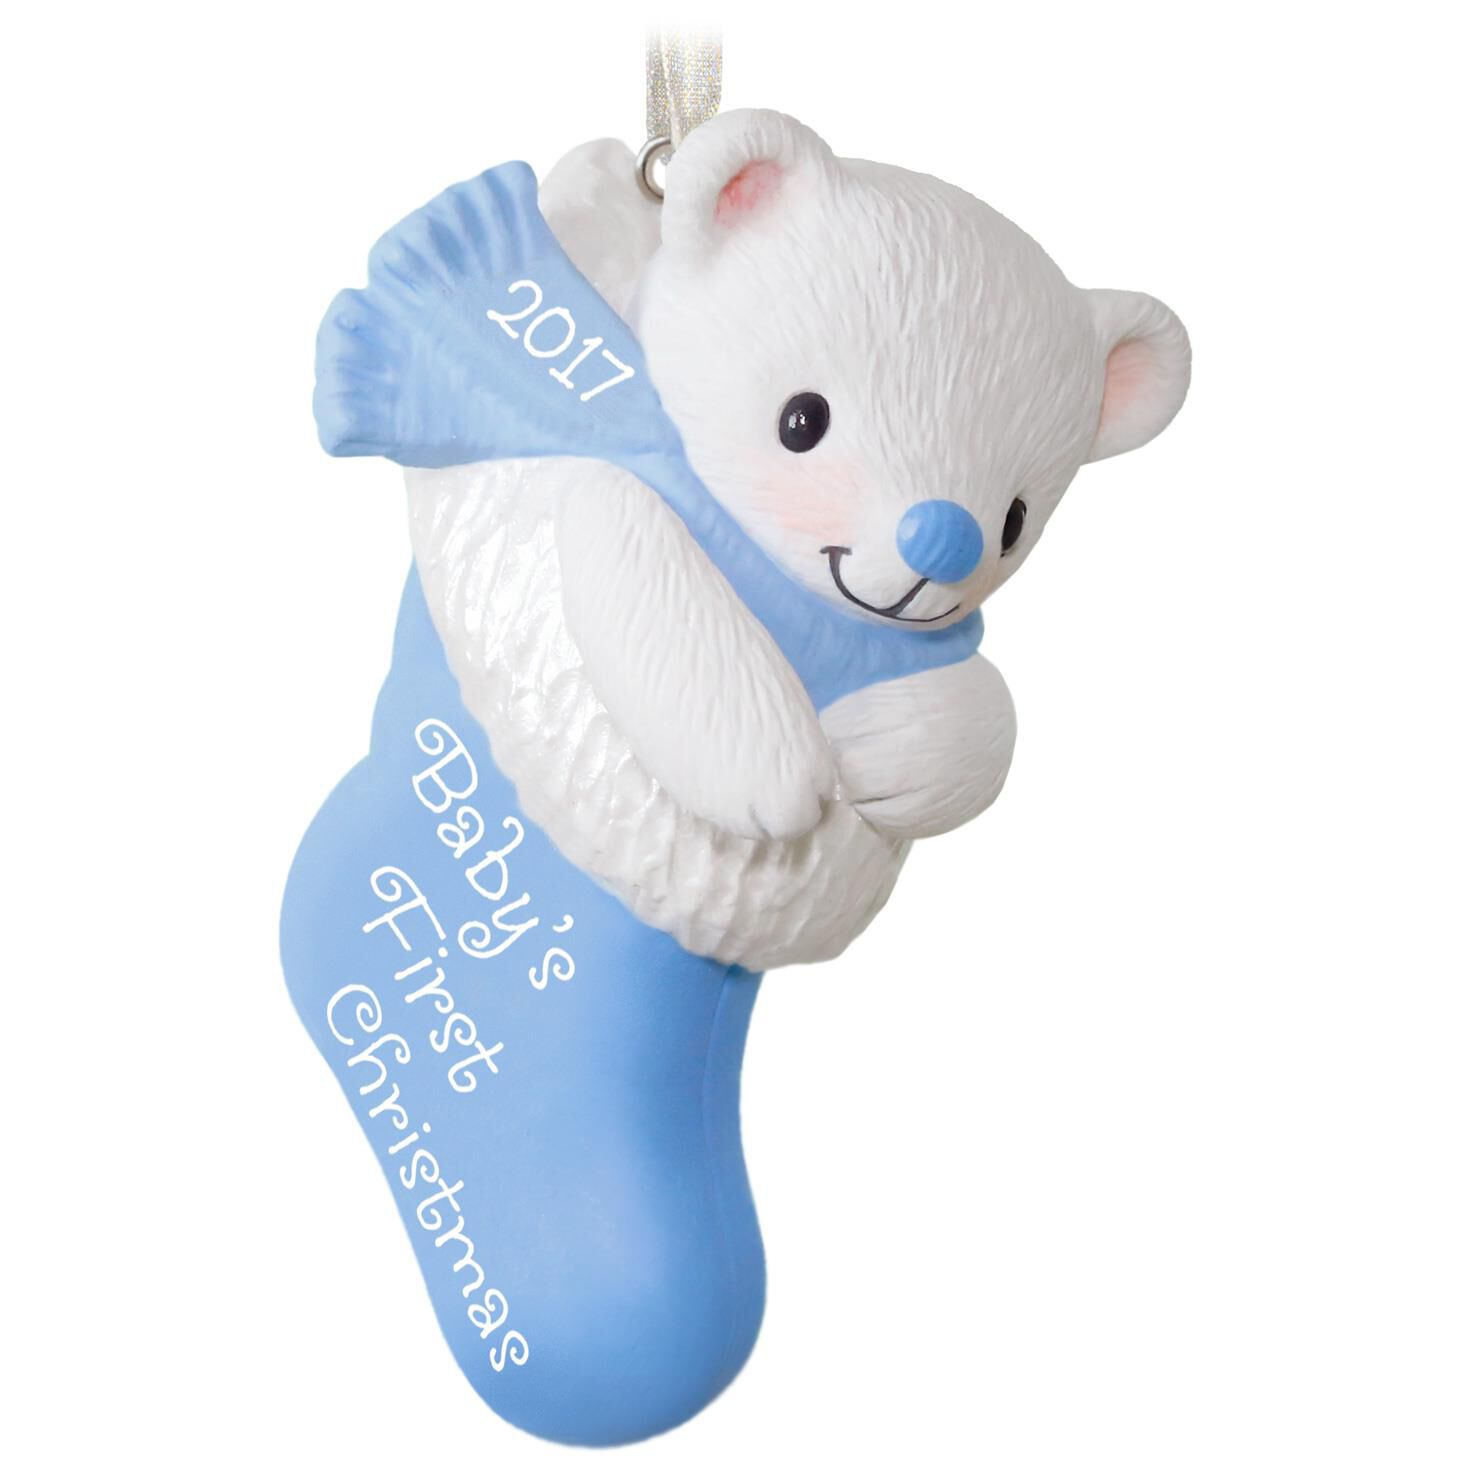 Baby ornament - Baby Ornament 32